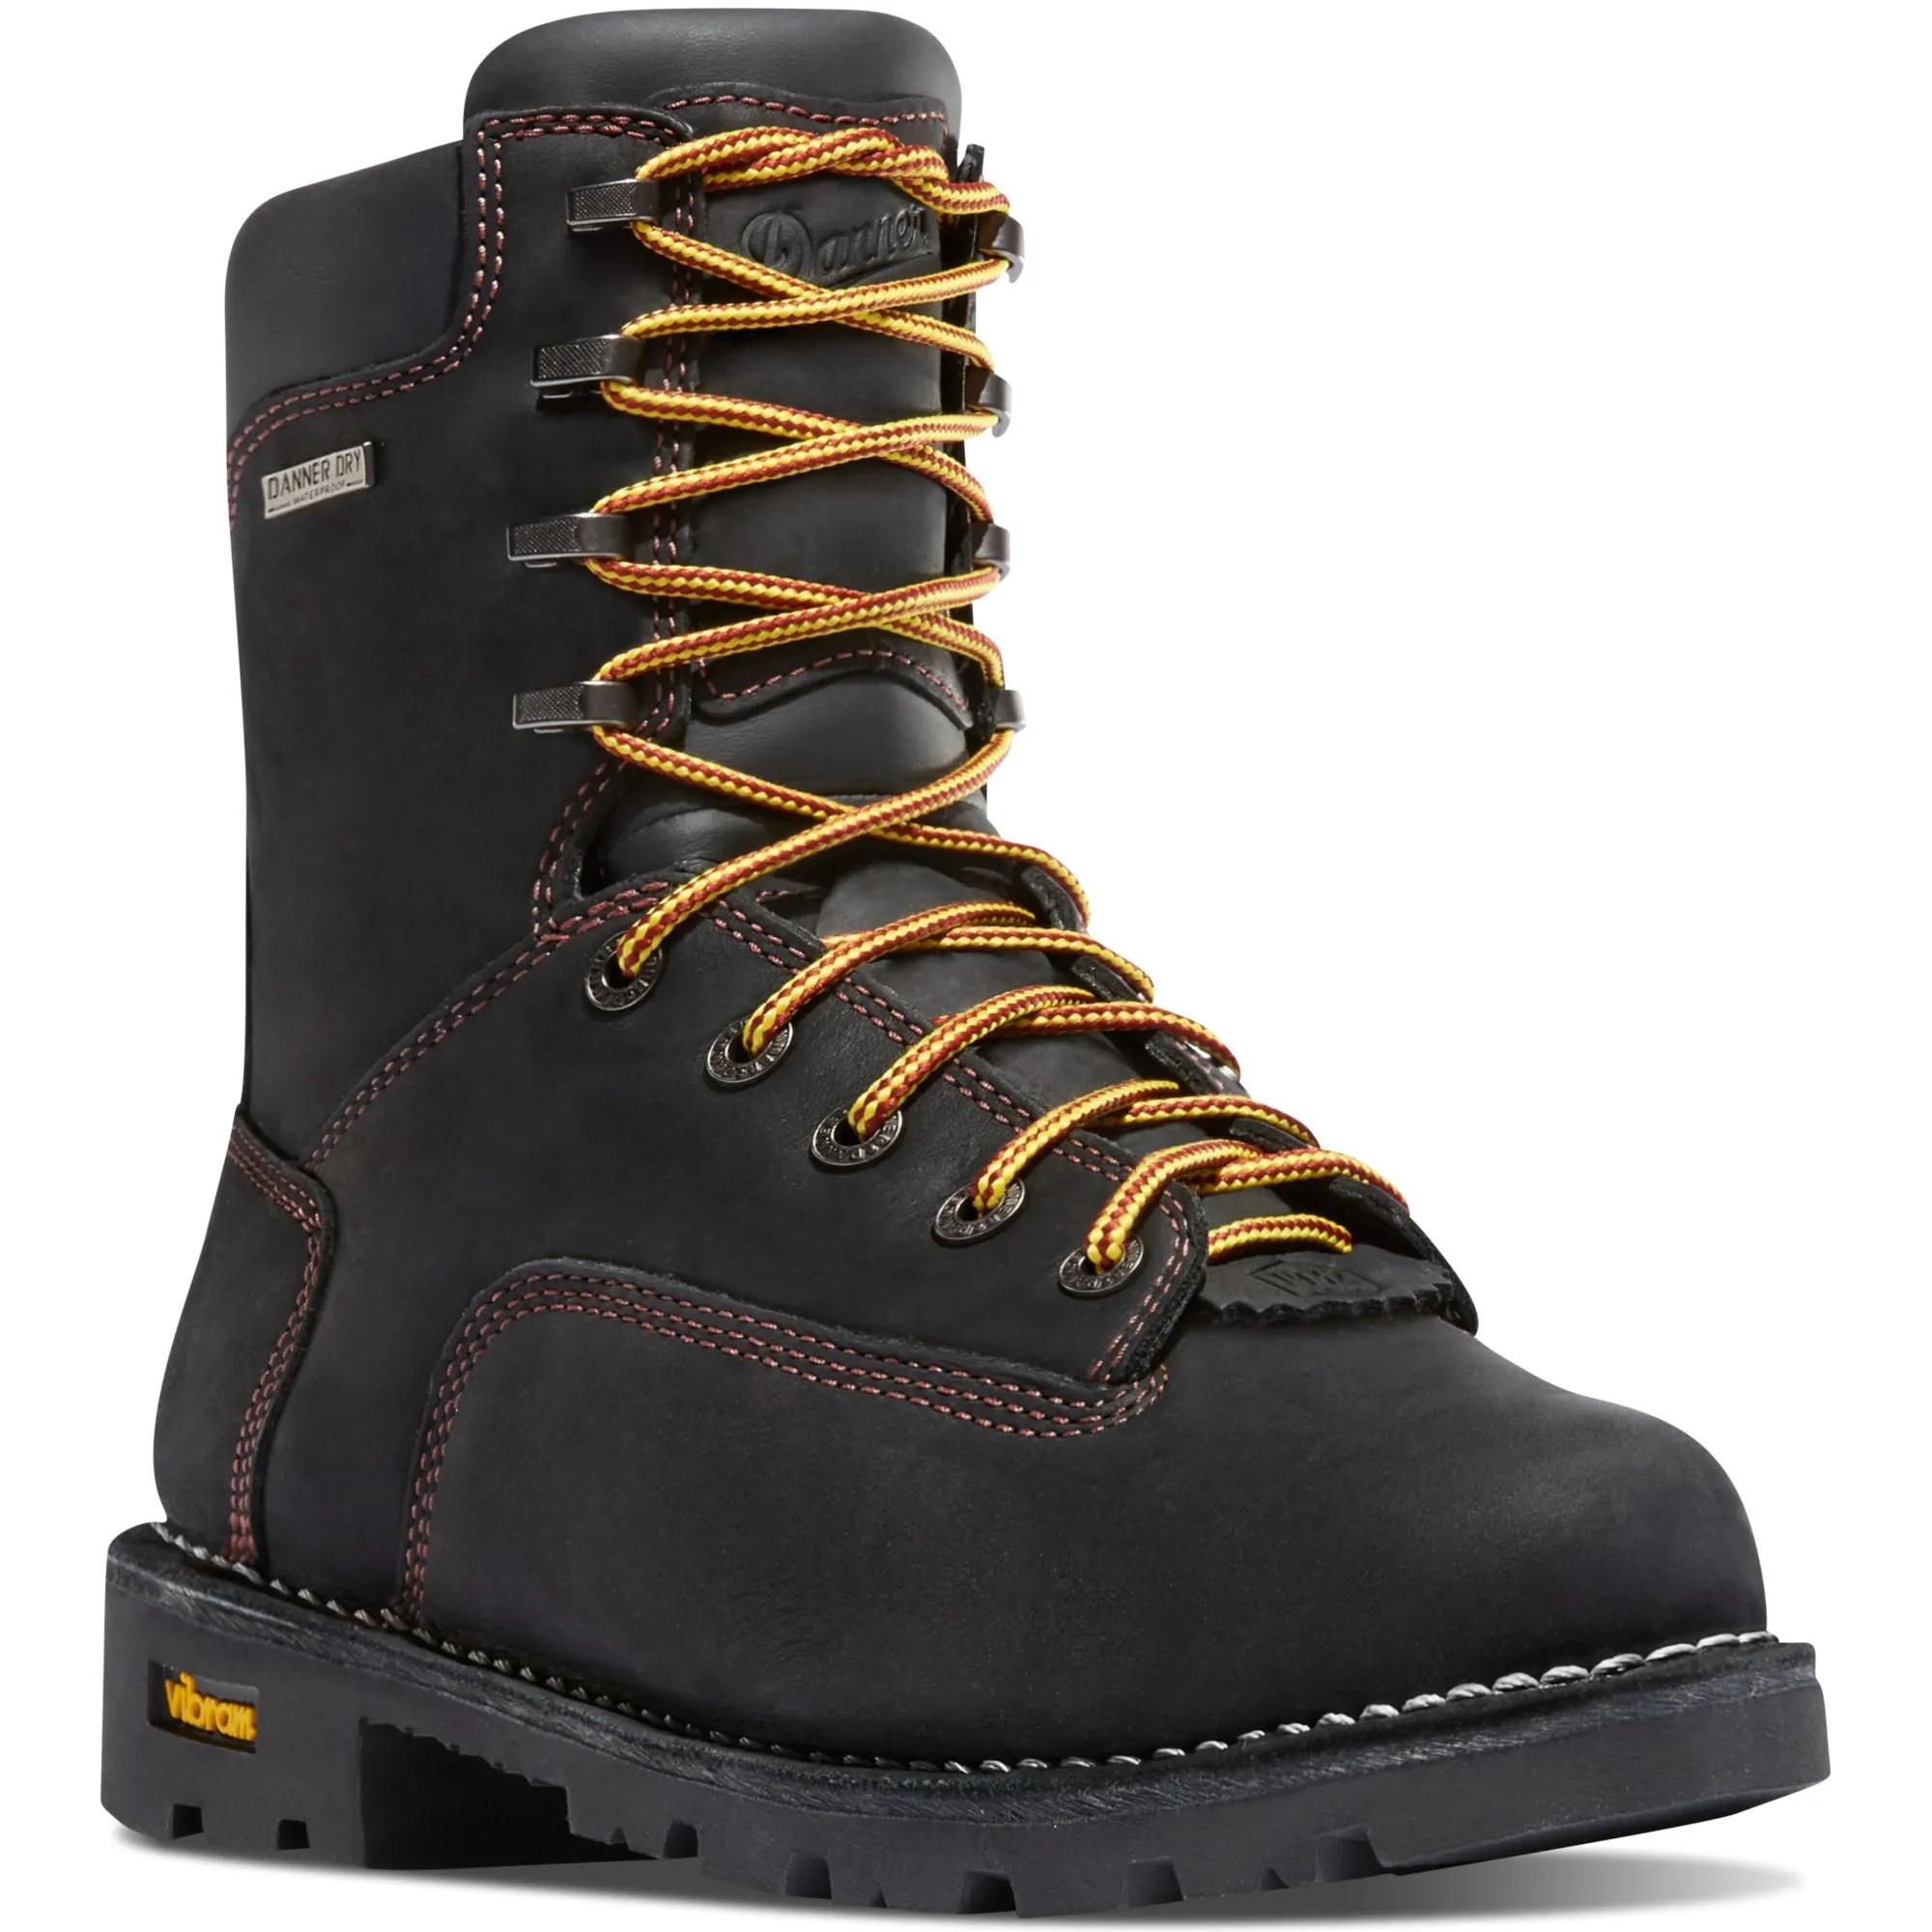 Danner Gritstone Boots